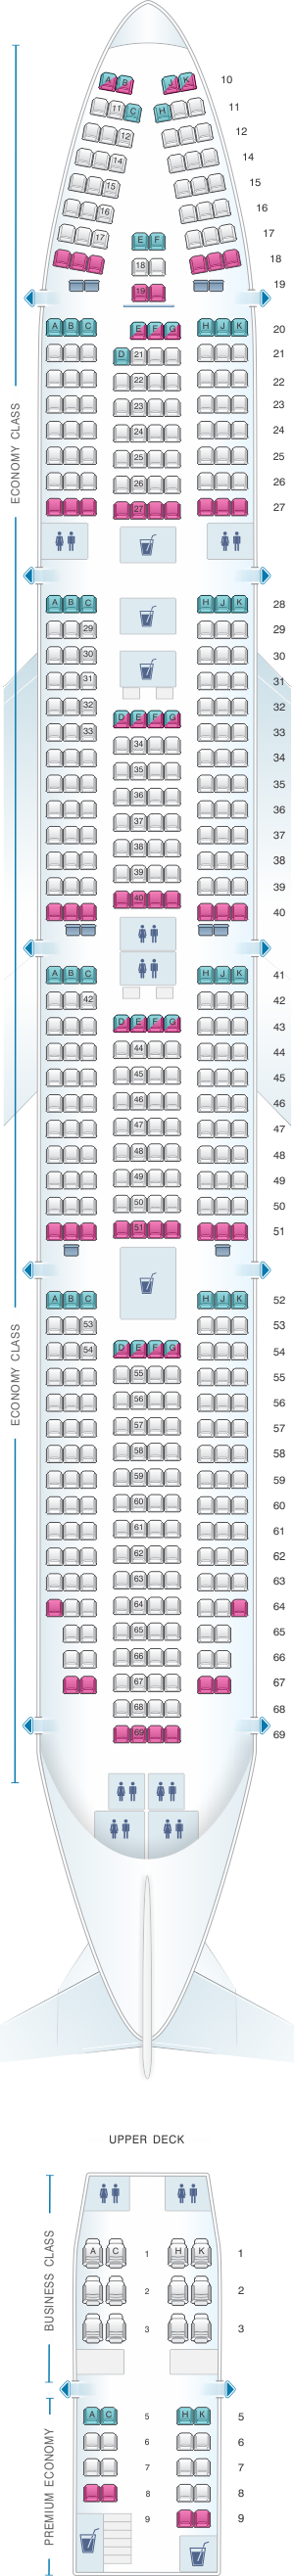 Seat map for Corsair Boeing B747 400